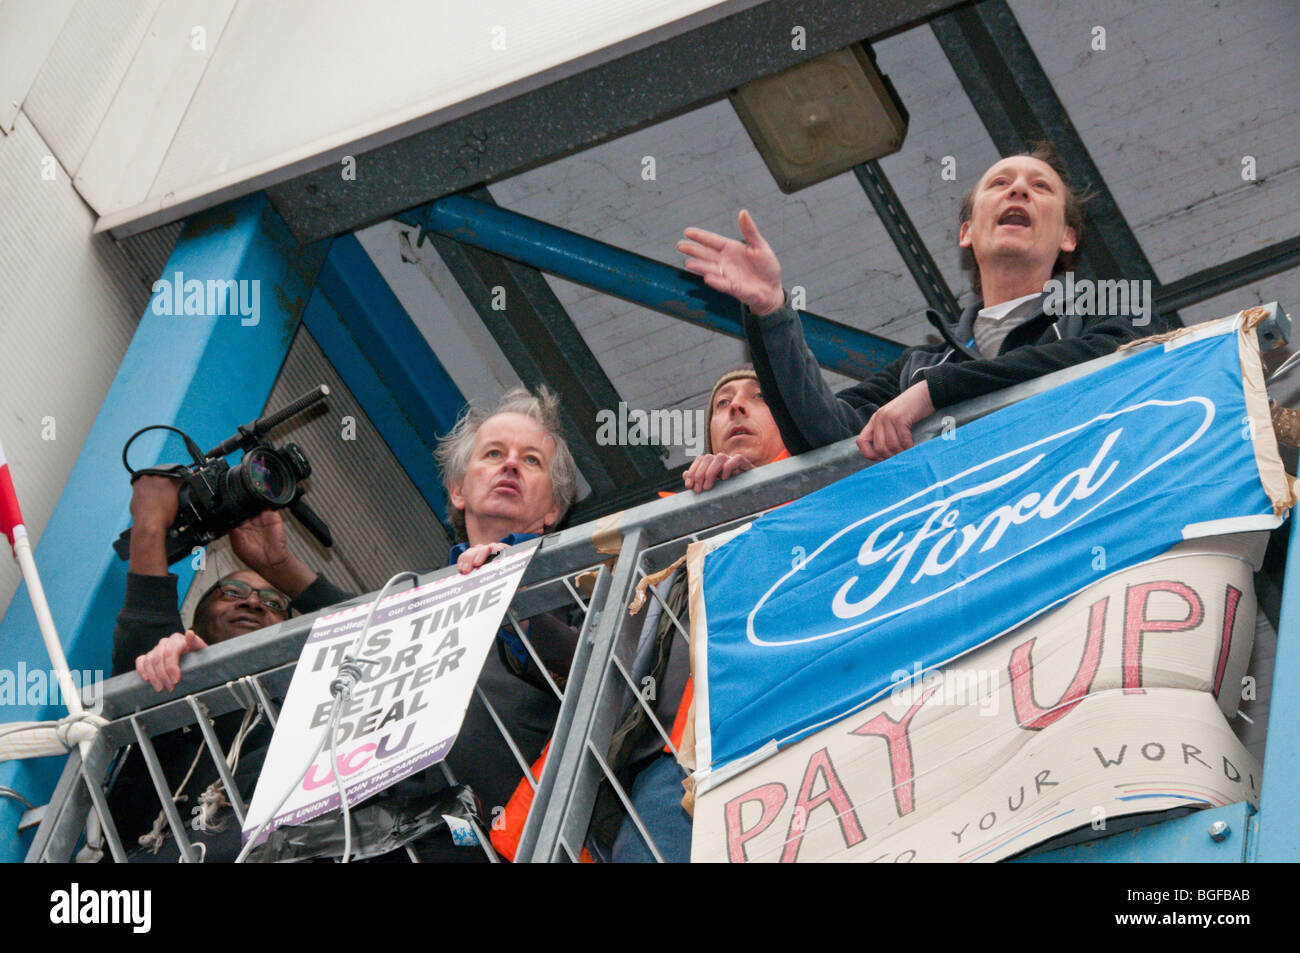 Sacked workers speak from factory balcony as occupation at Visteon (Ford) Enfield is ended by court order. Stock Photo